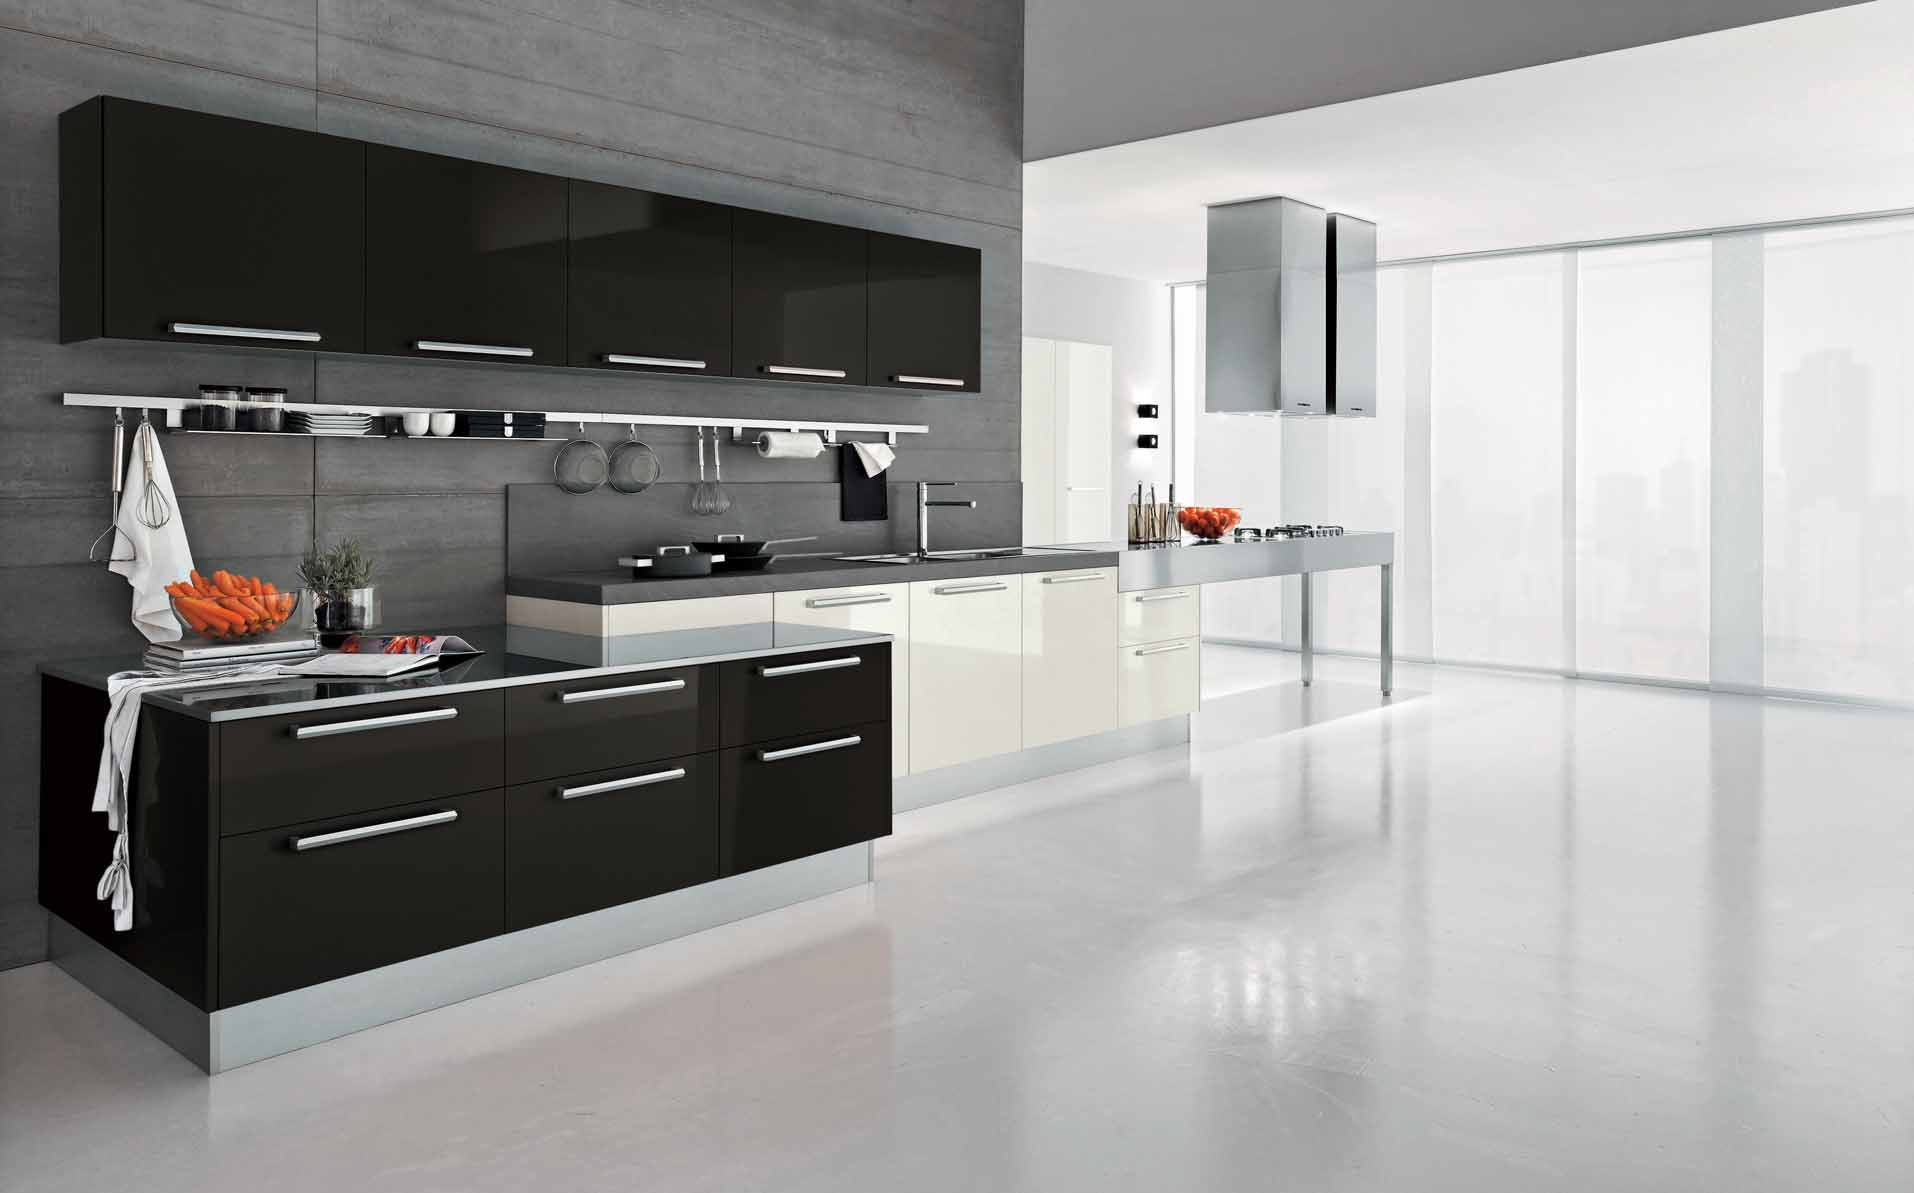 16 open concept kitchen designs in modern style that will beautify your home modern kitchen designs 16 Open Concept Kitchen Designs In Modern Style That Will Beautify Your Home